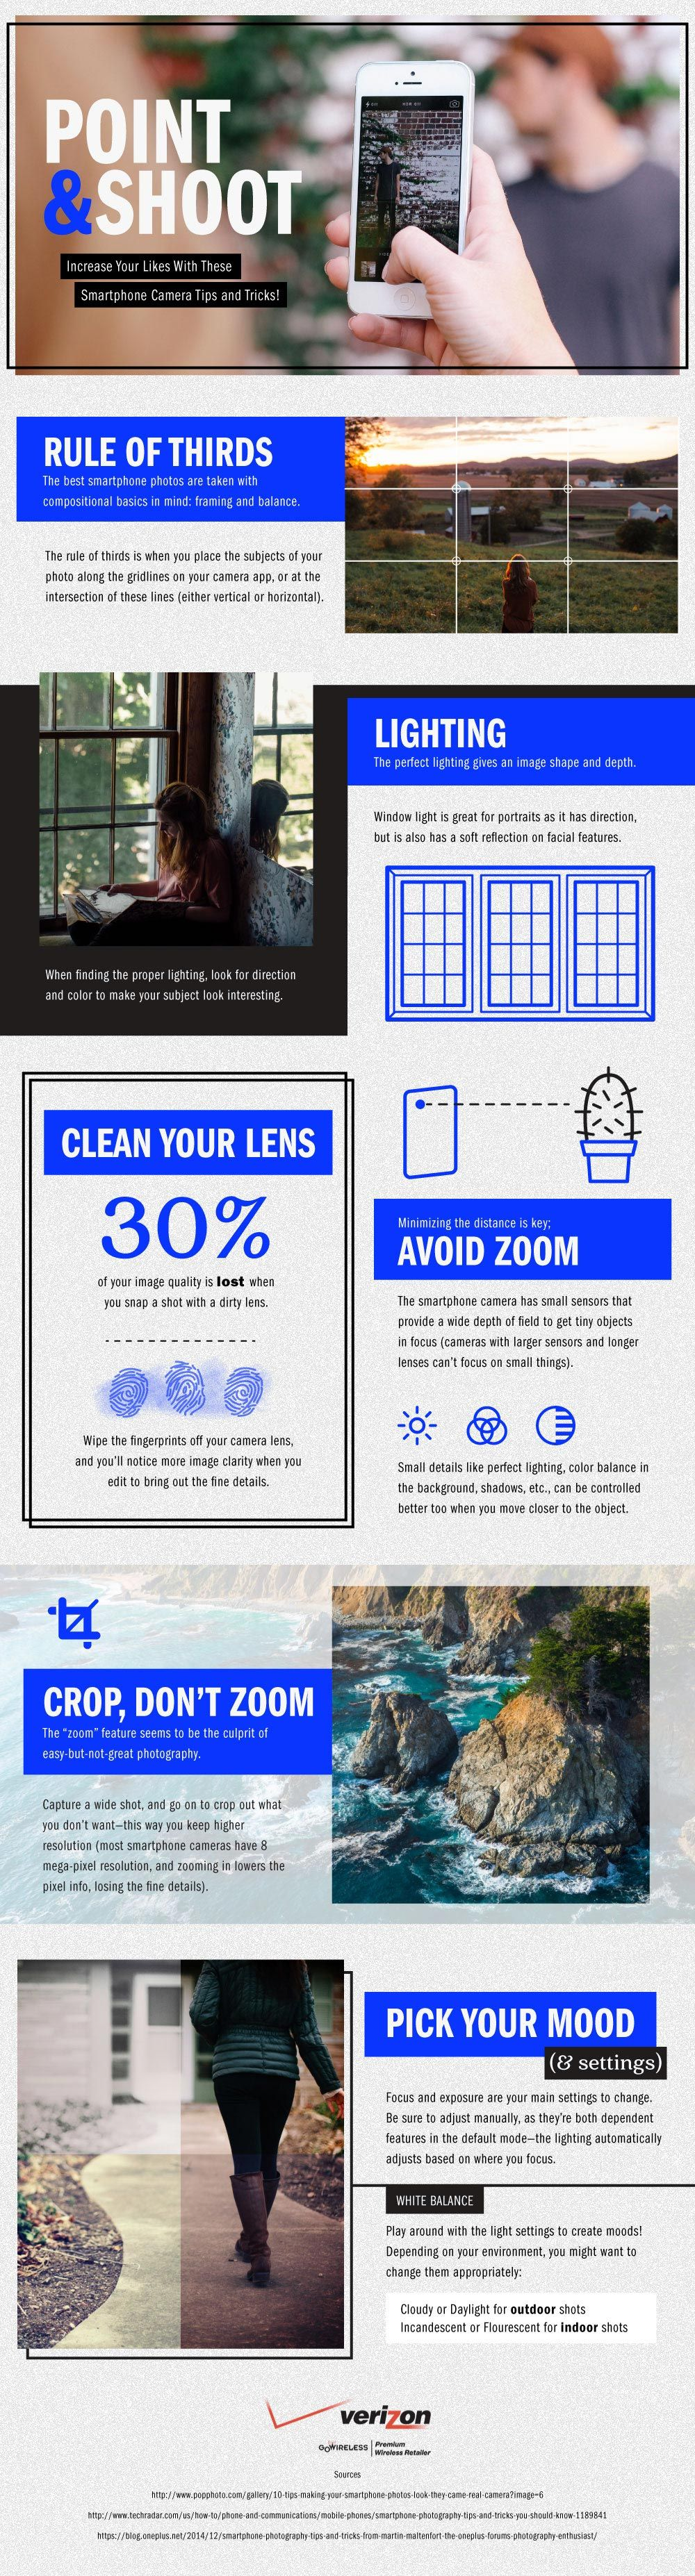 Smartphone Photography Tips and Tricks #Infographic